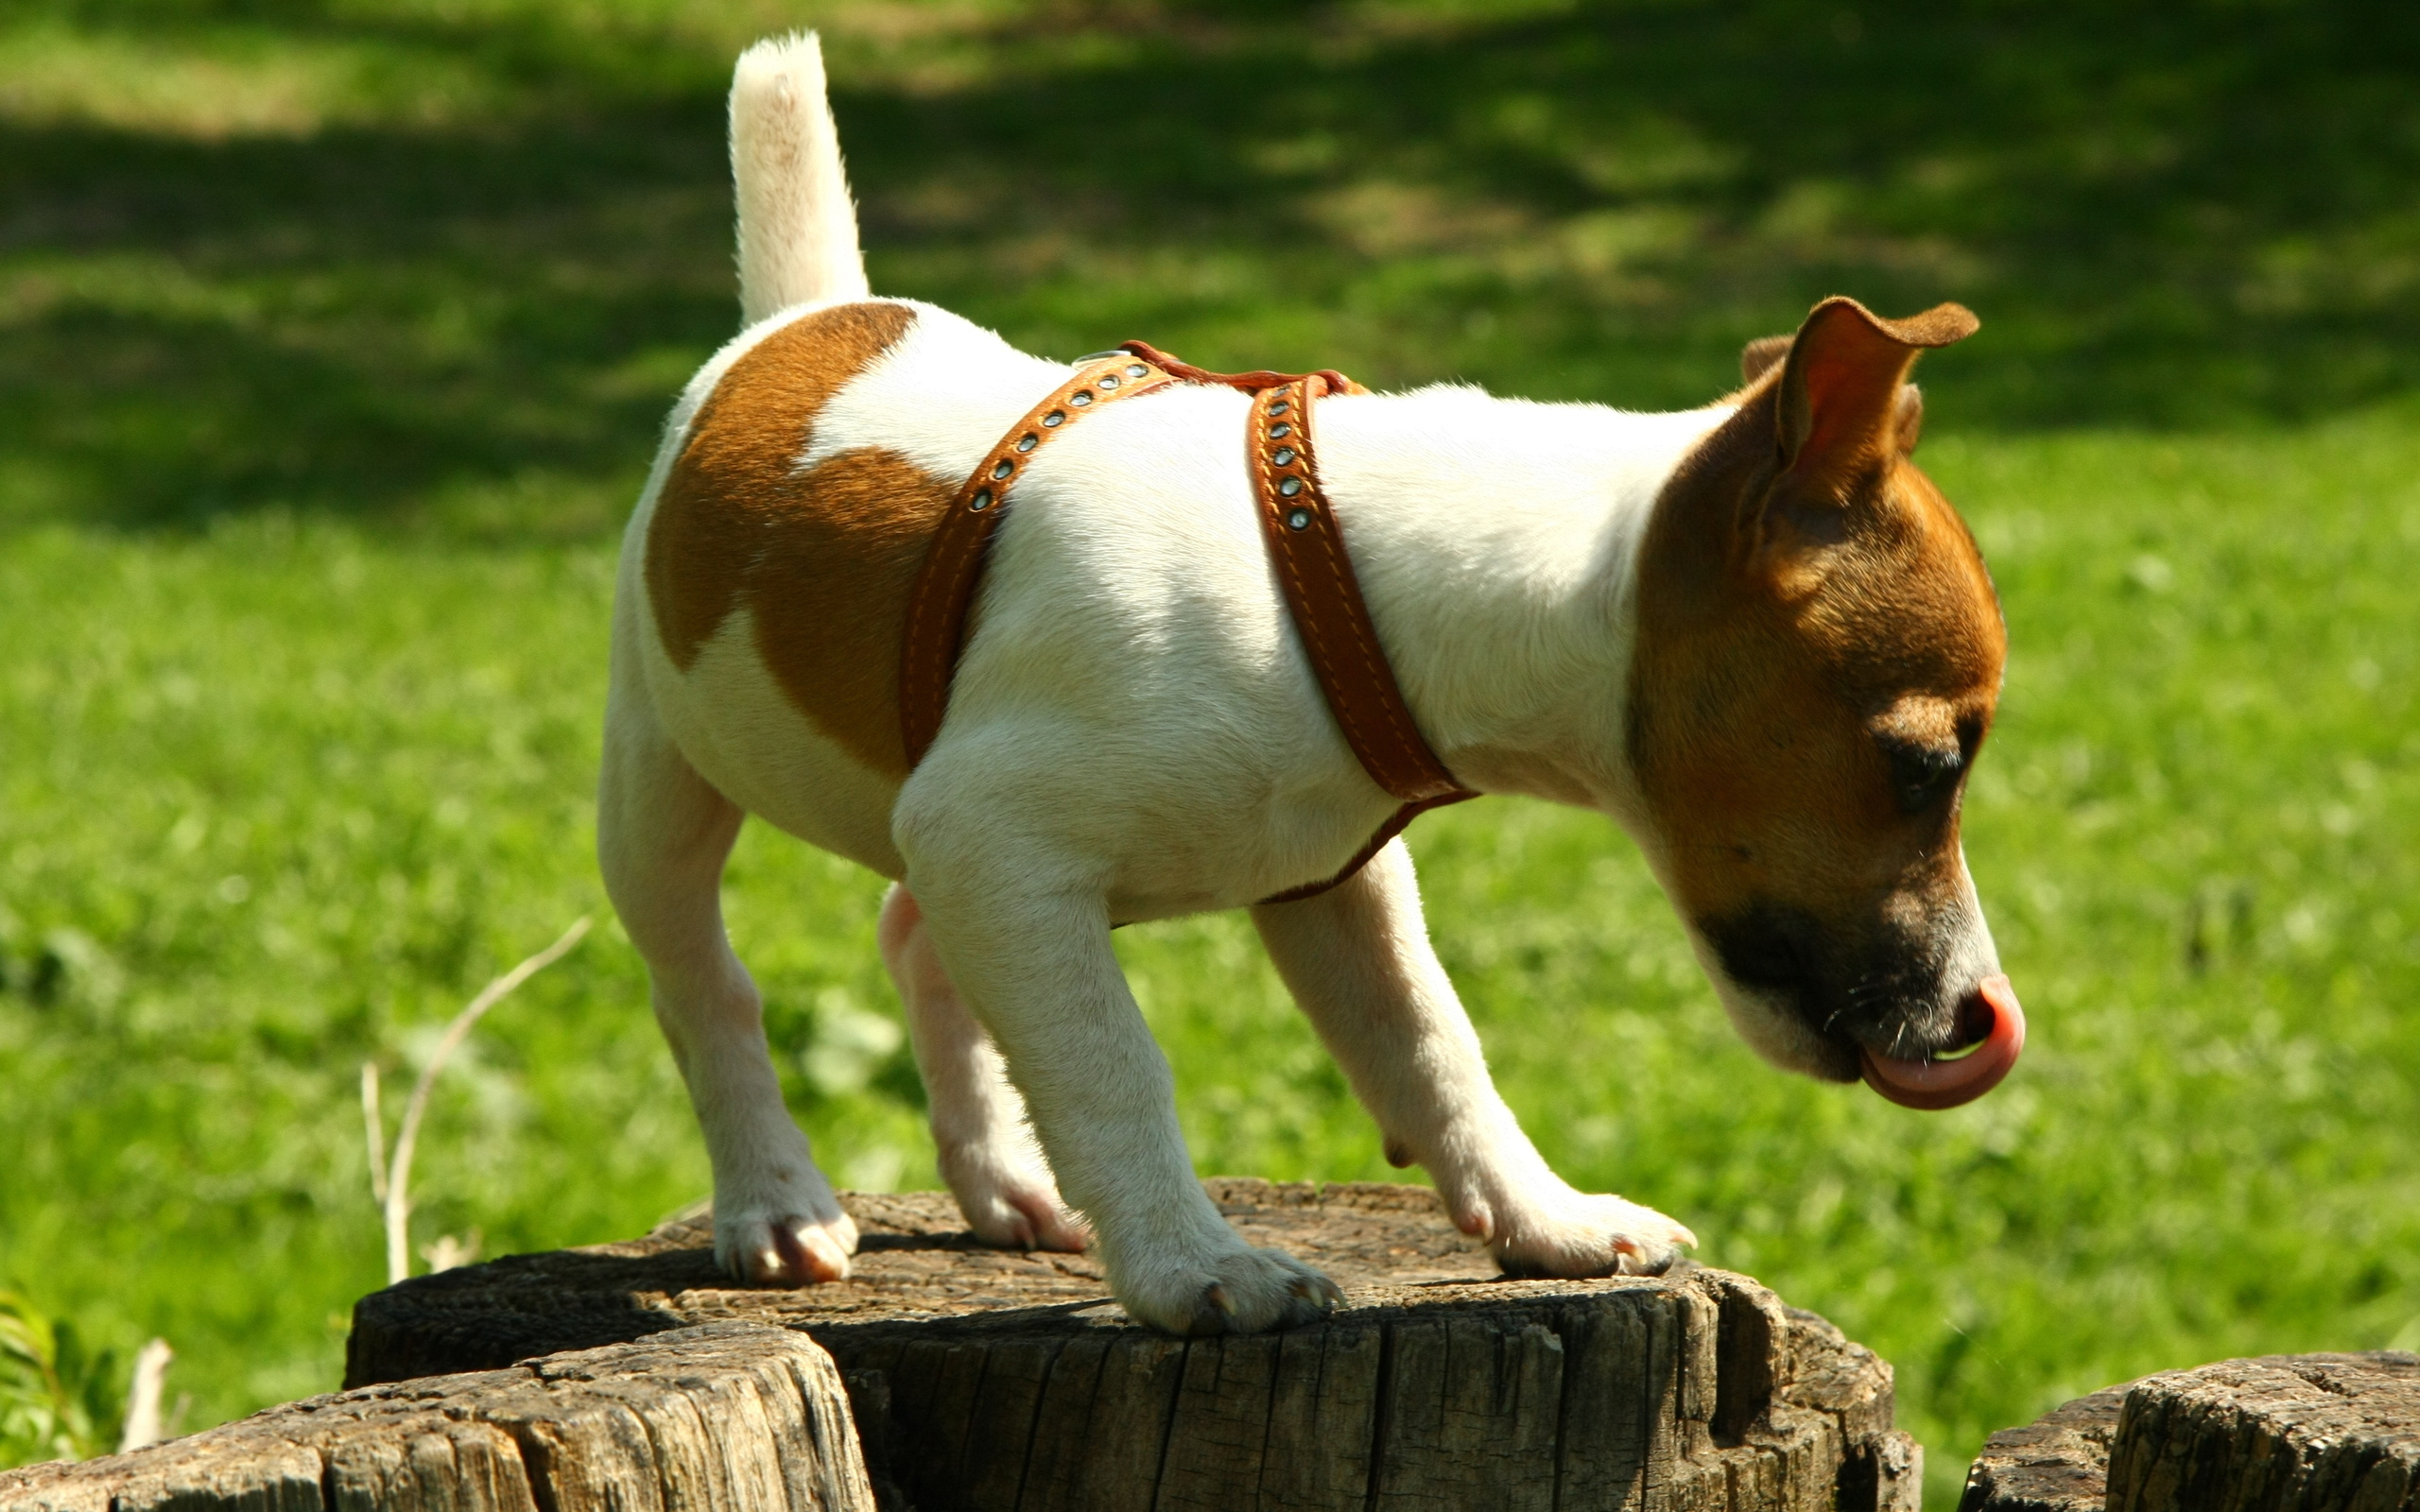 Funny Dog Iphone Wallpaper Jack Russell Terrier Full Hd Tapeta And Tło 2560x1600